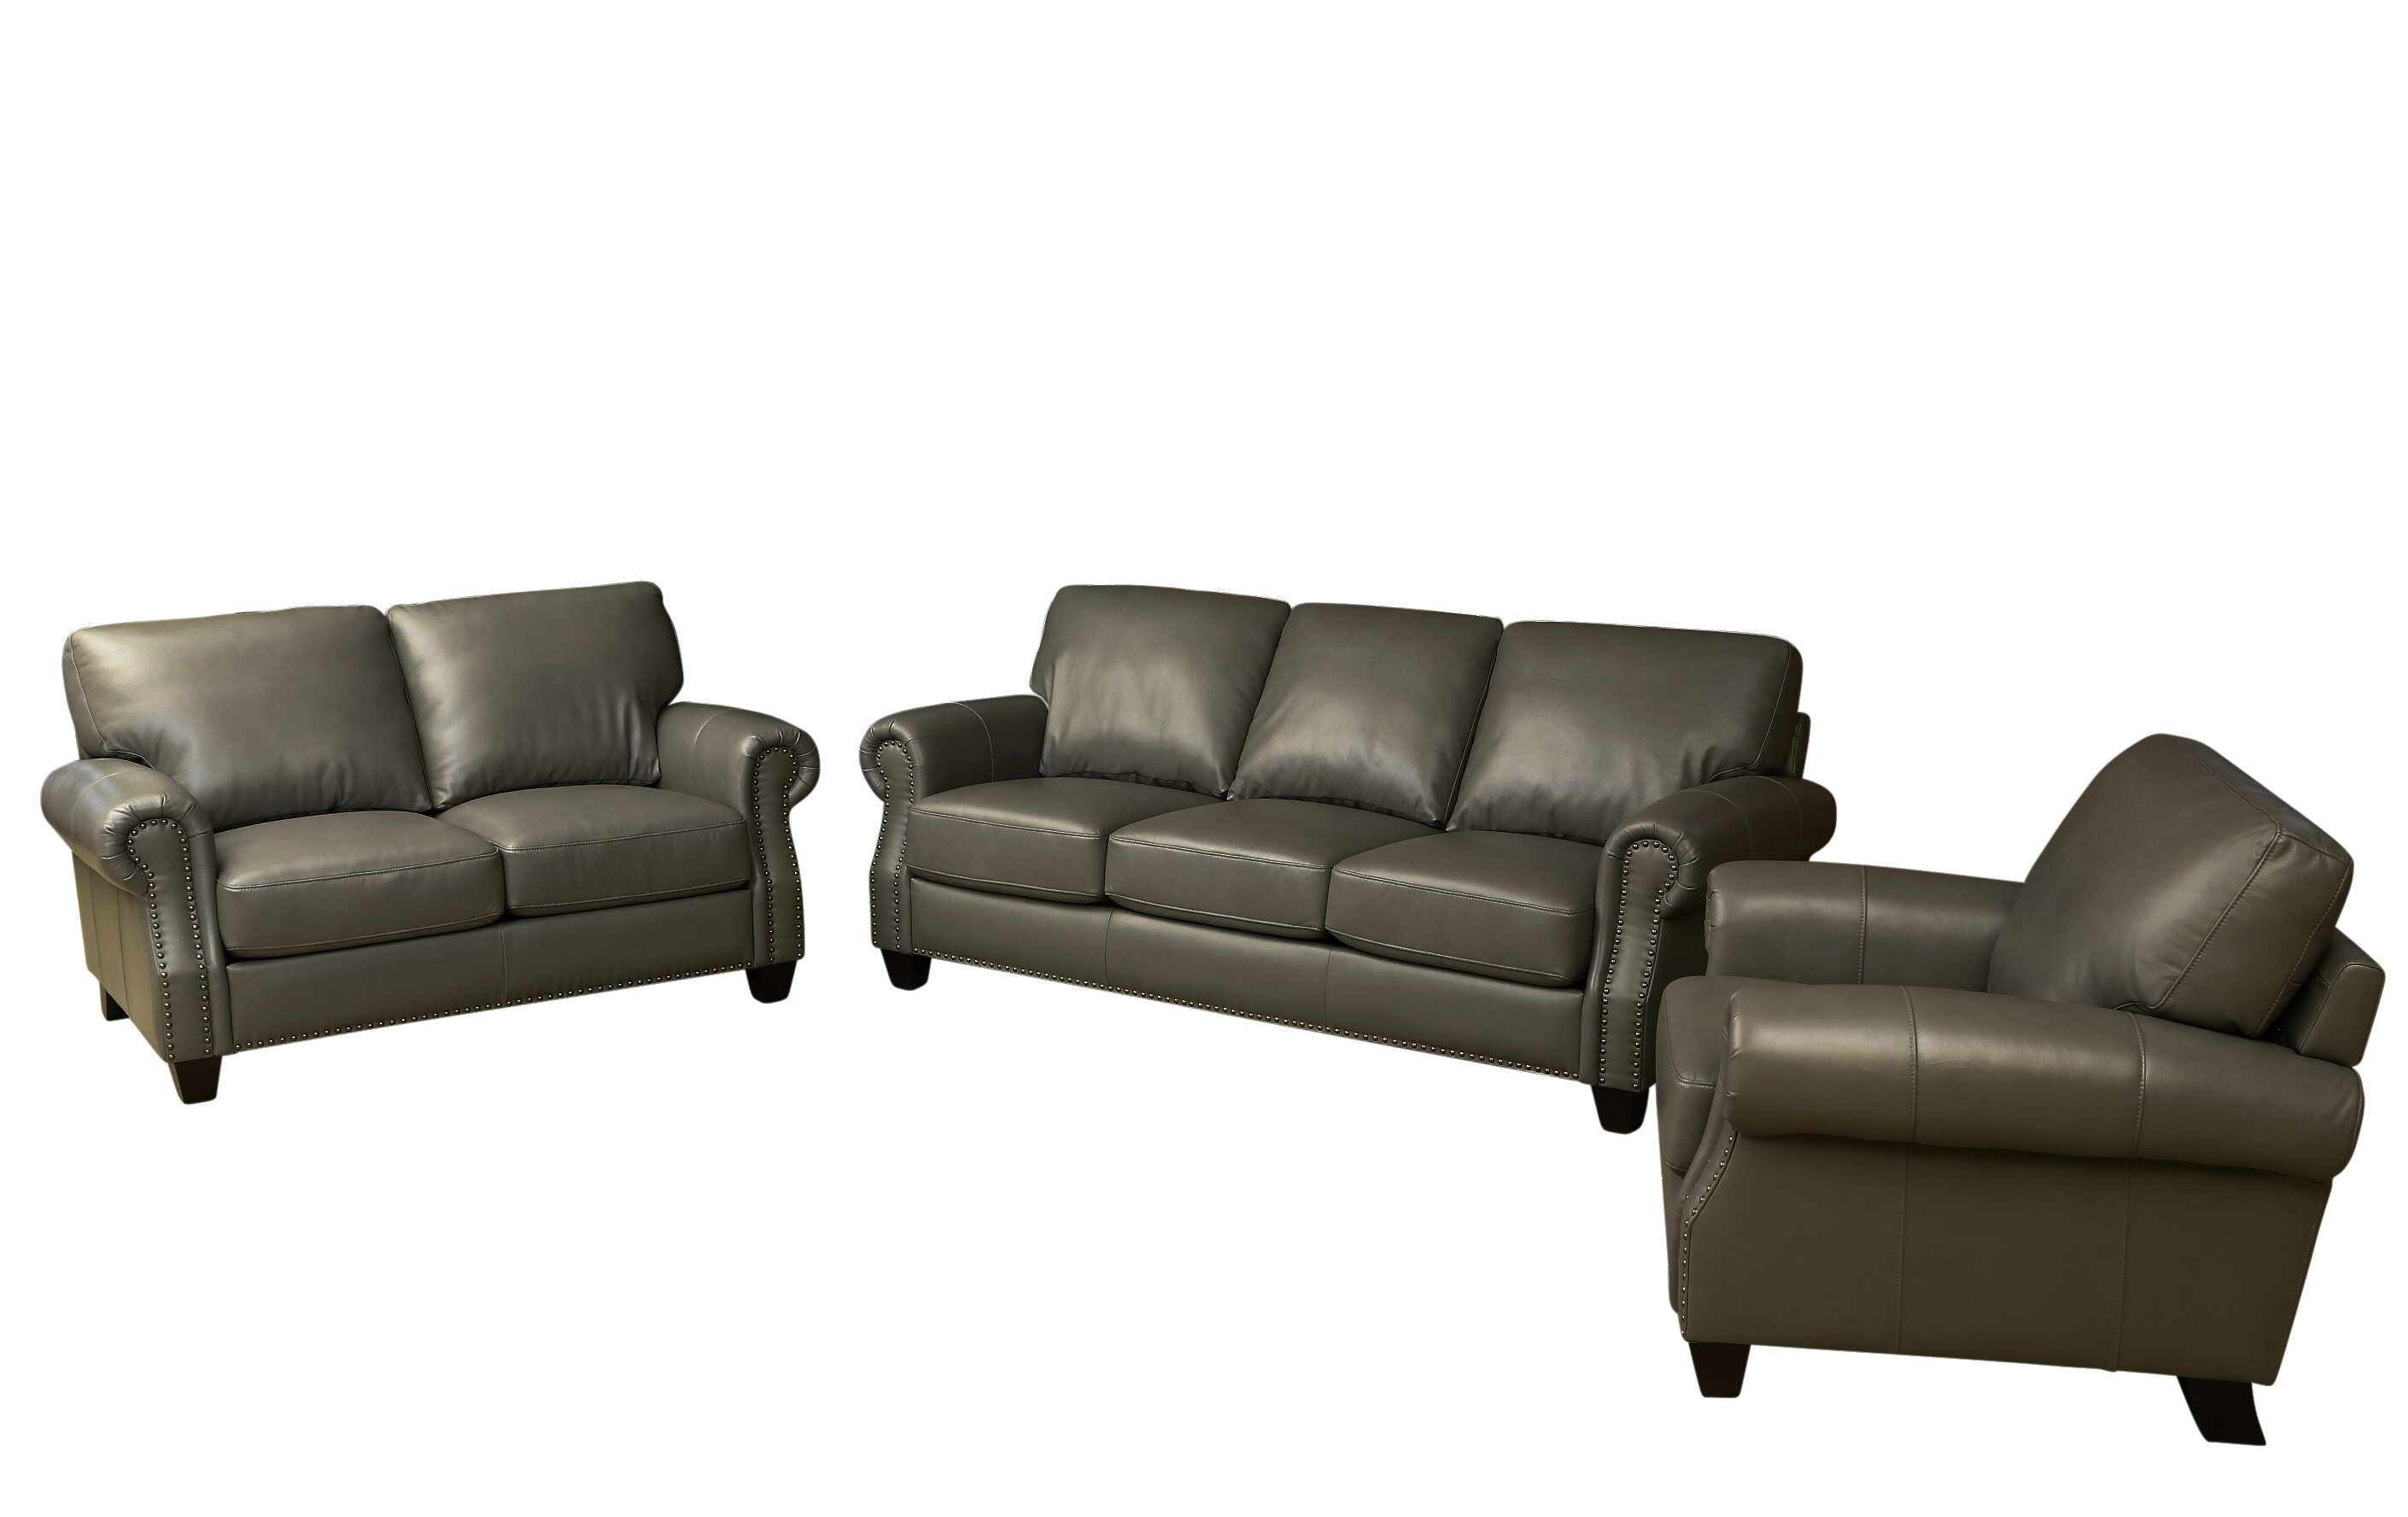 Darby Home Co Cairnbrook 3 Piece Leather Living Room Set | Wayfair